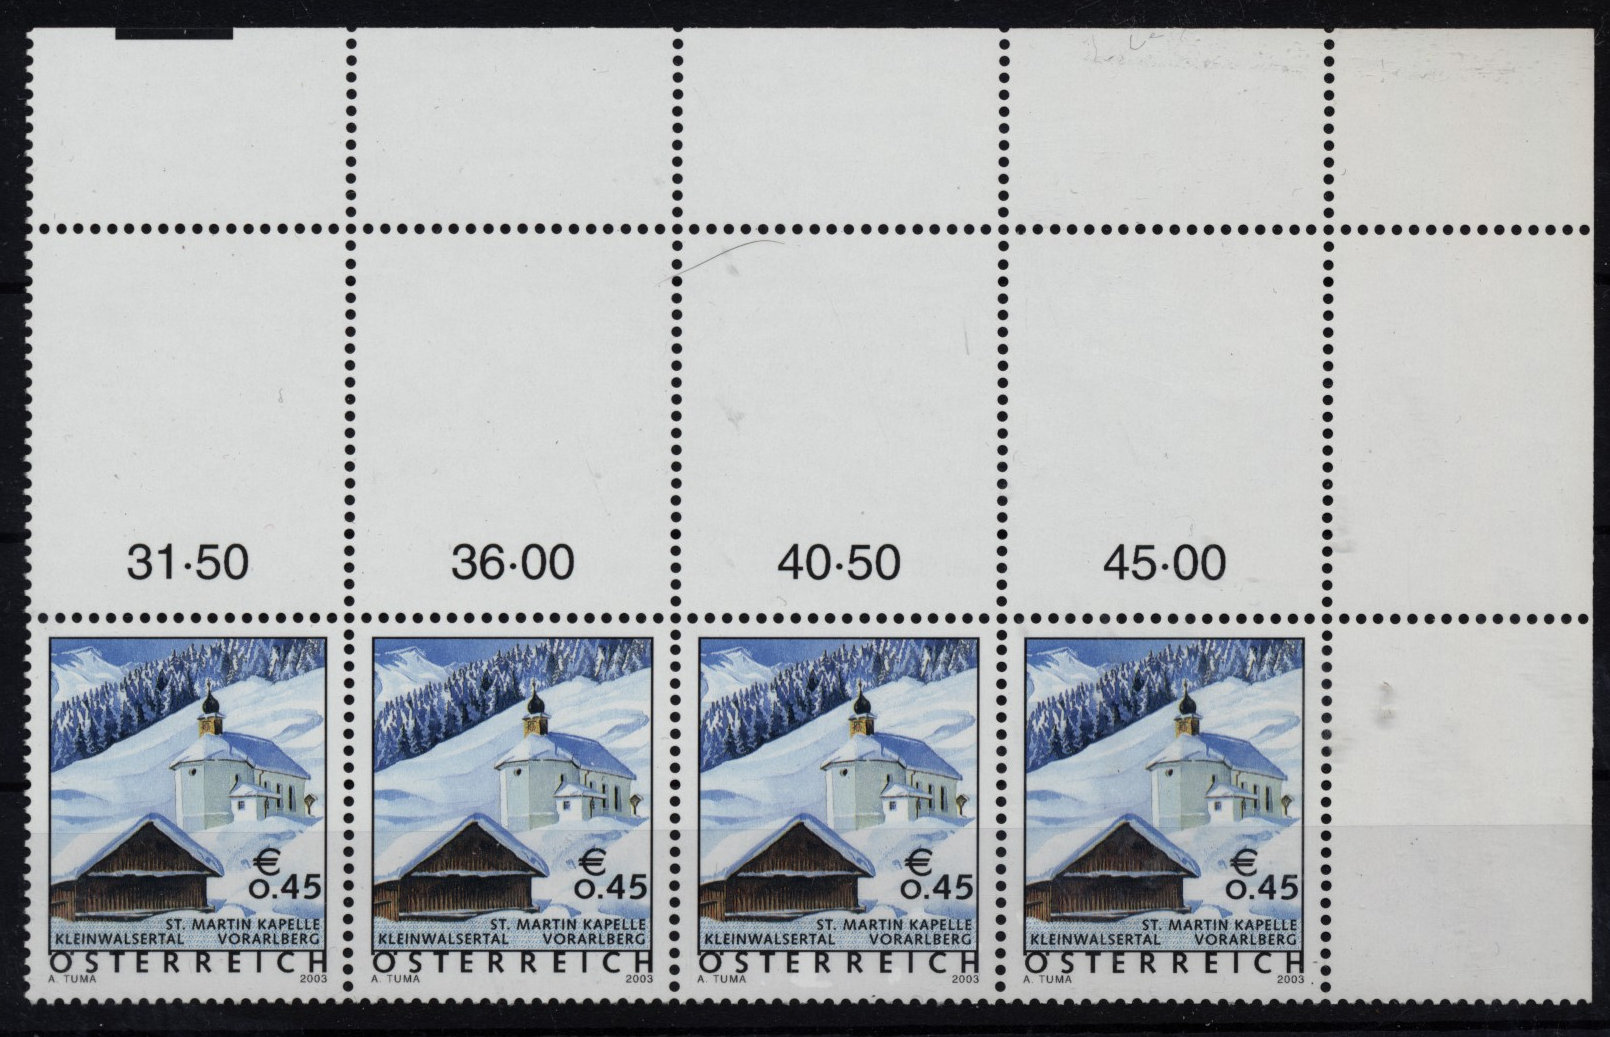 Austria 2003 ANK 2488. vacation country Austria. Strip of 4! MNH-VF ** - Eberau, Österreich - Austria 2003 ANK 2488. vacation country Austria. Strip of 4! MNH-VF ** - Eberau, Österreich